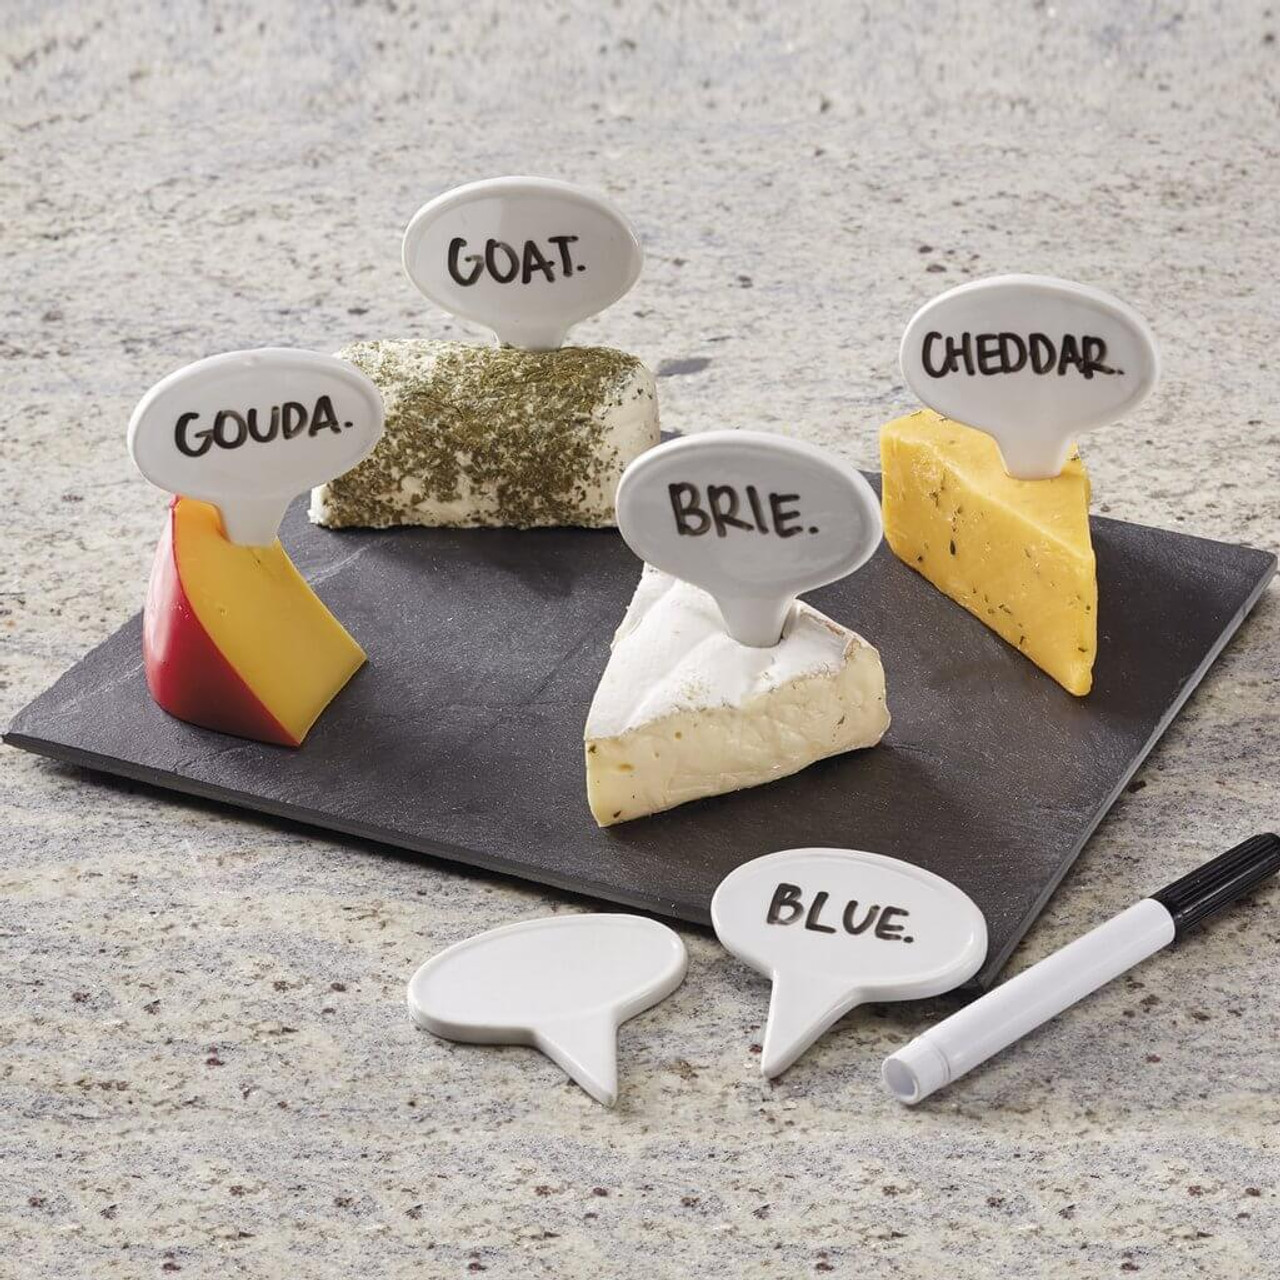 """Have fun labeling your cheeses and displaying them on the slate board for your party guests! Say cheese-board :) with 6 porcelain markers. Dry erase pen included.  Slate board: 10.25 x 7.75"""", Porcelain markers: 2.75 x 2.75"""". Dishwasher safe."""